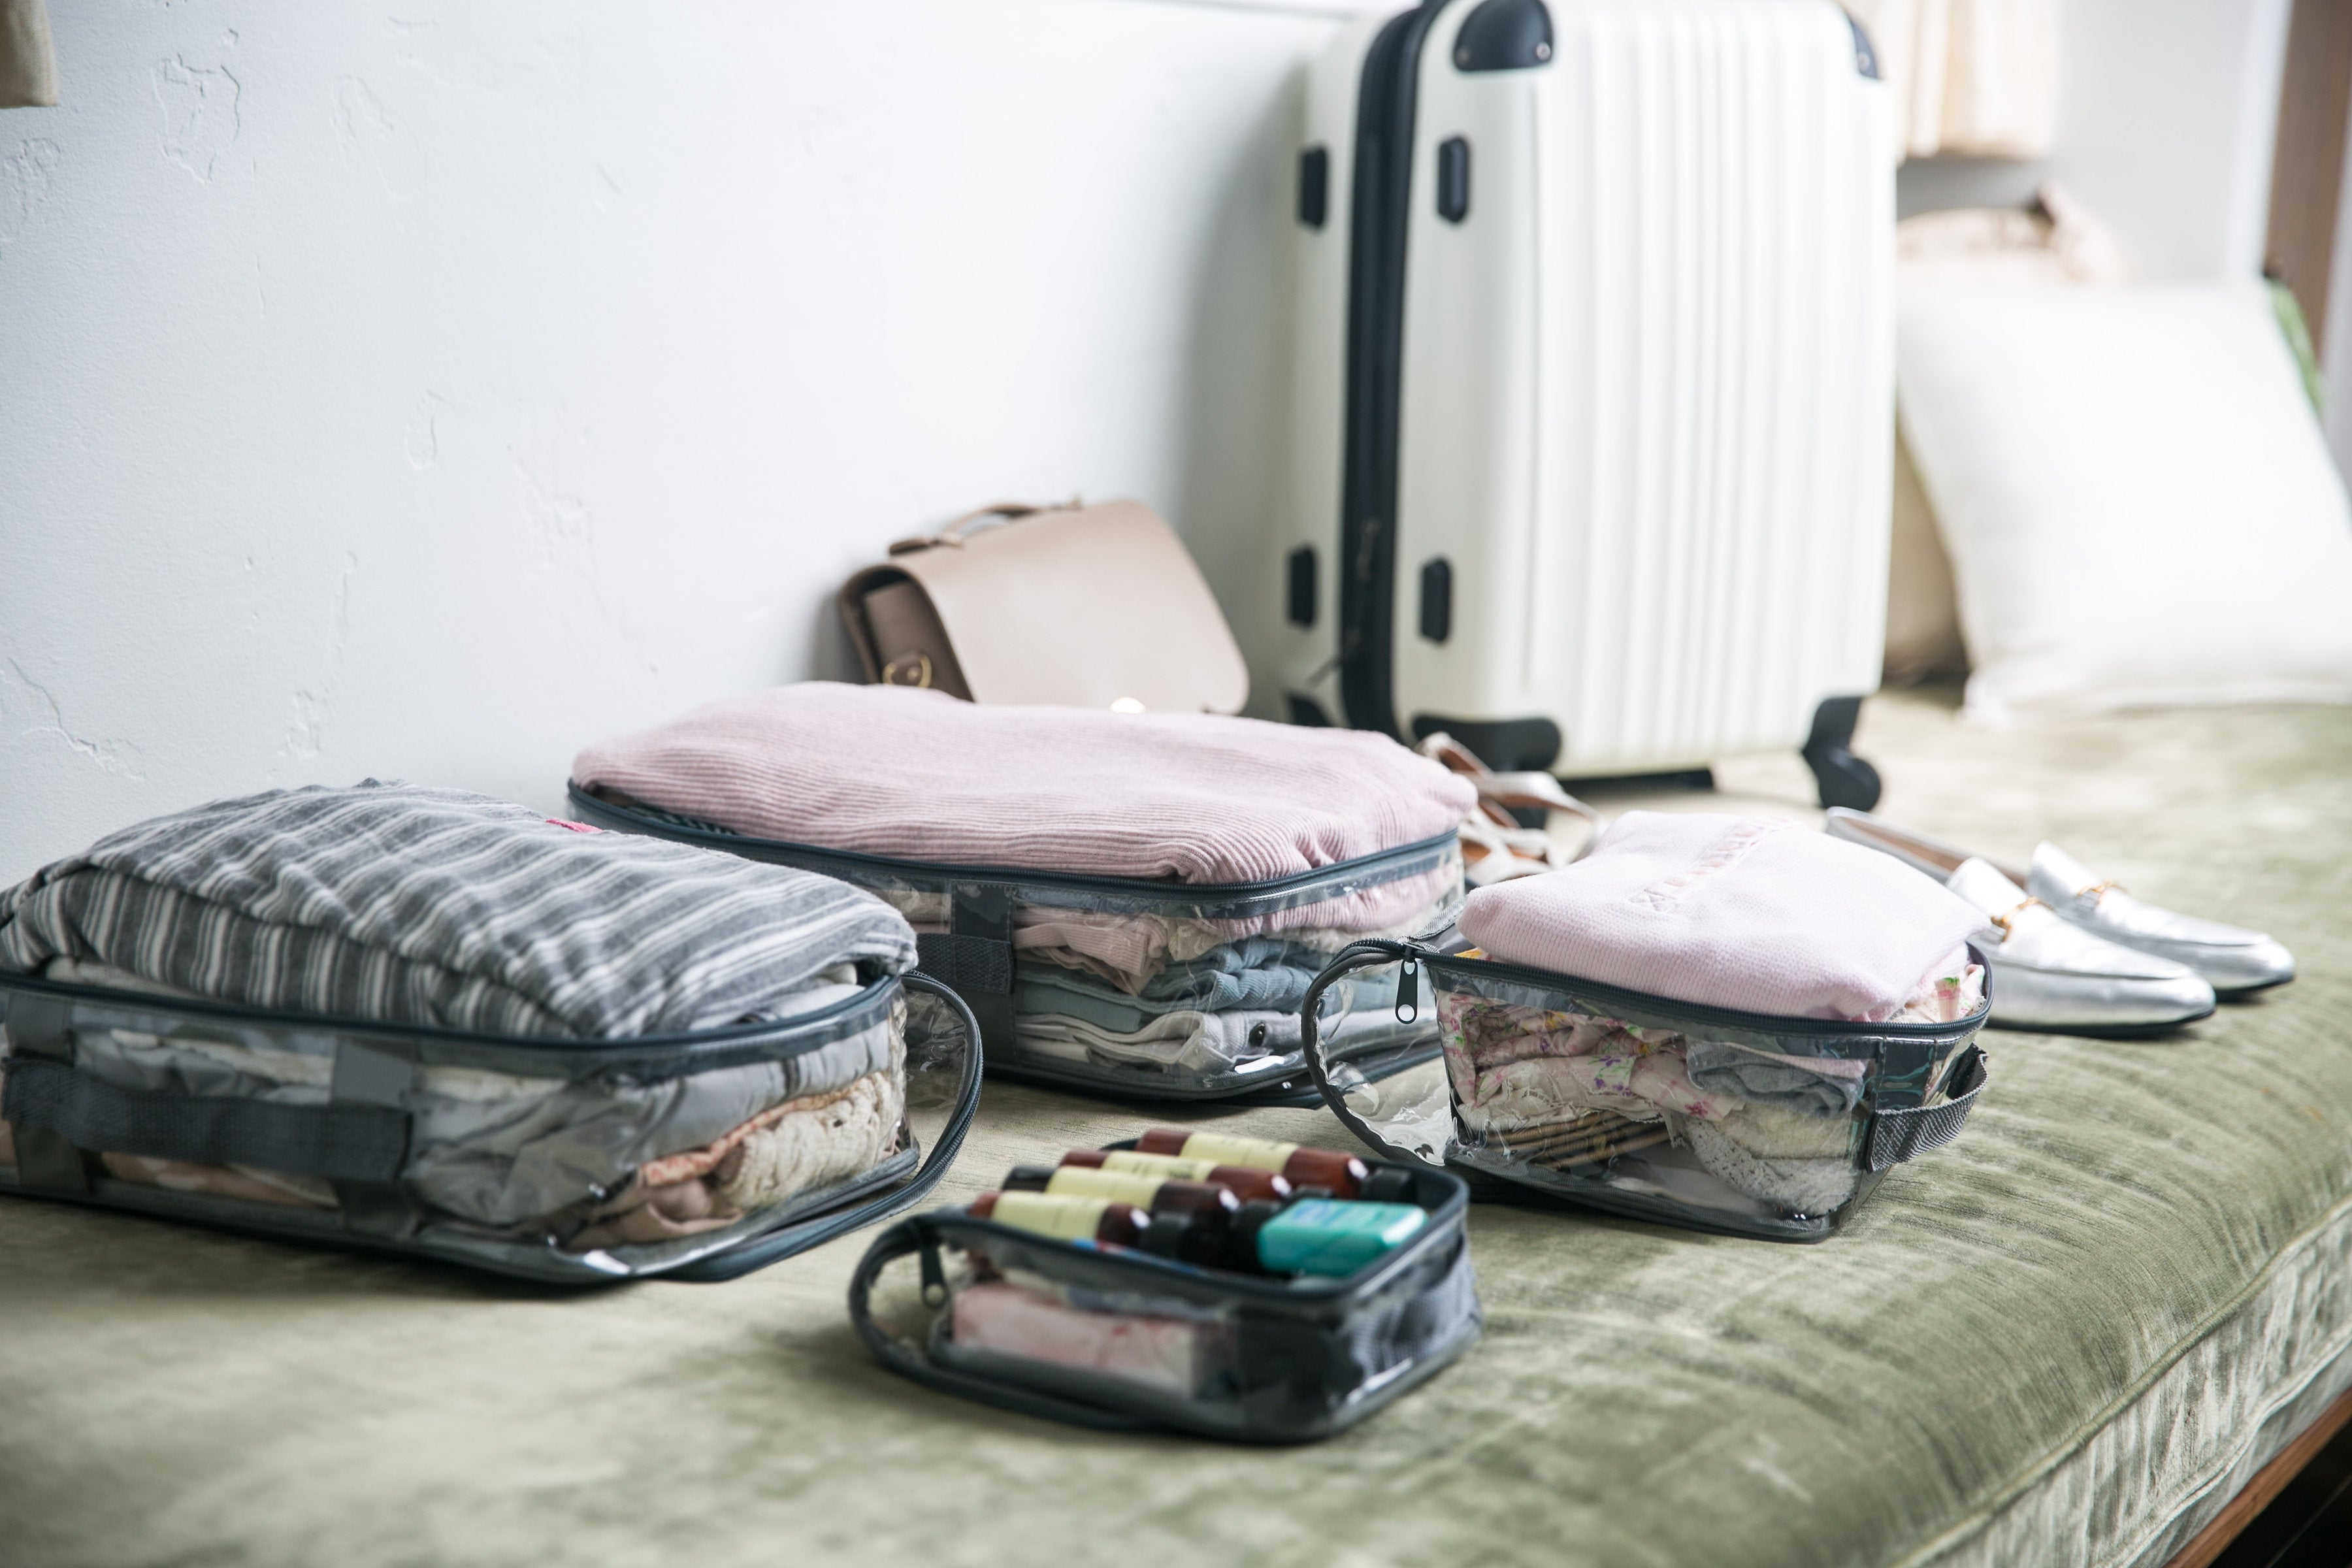 Different sizes of EzPacking cubes for an organized suitcase